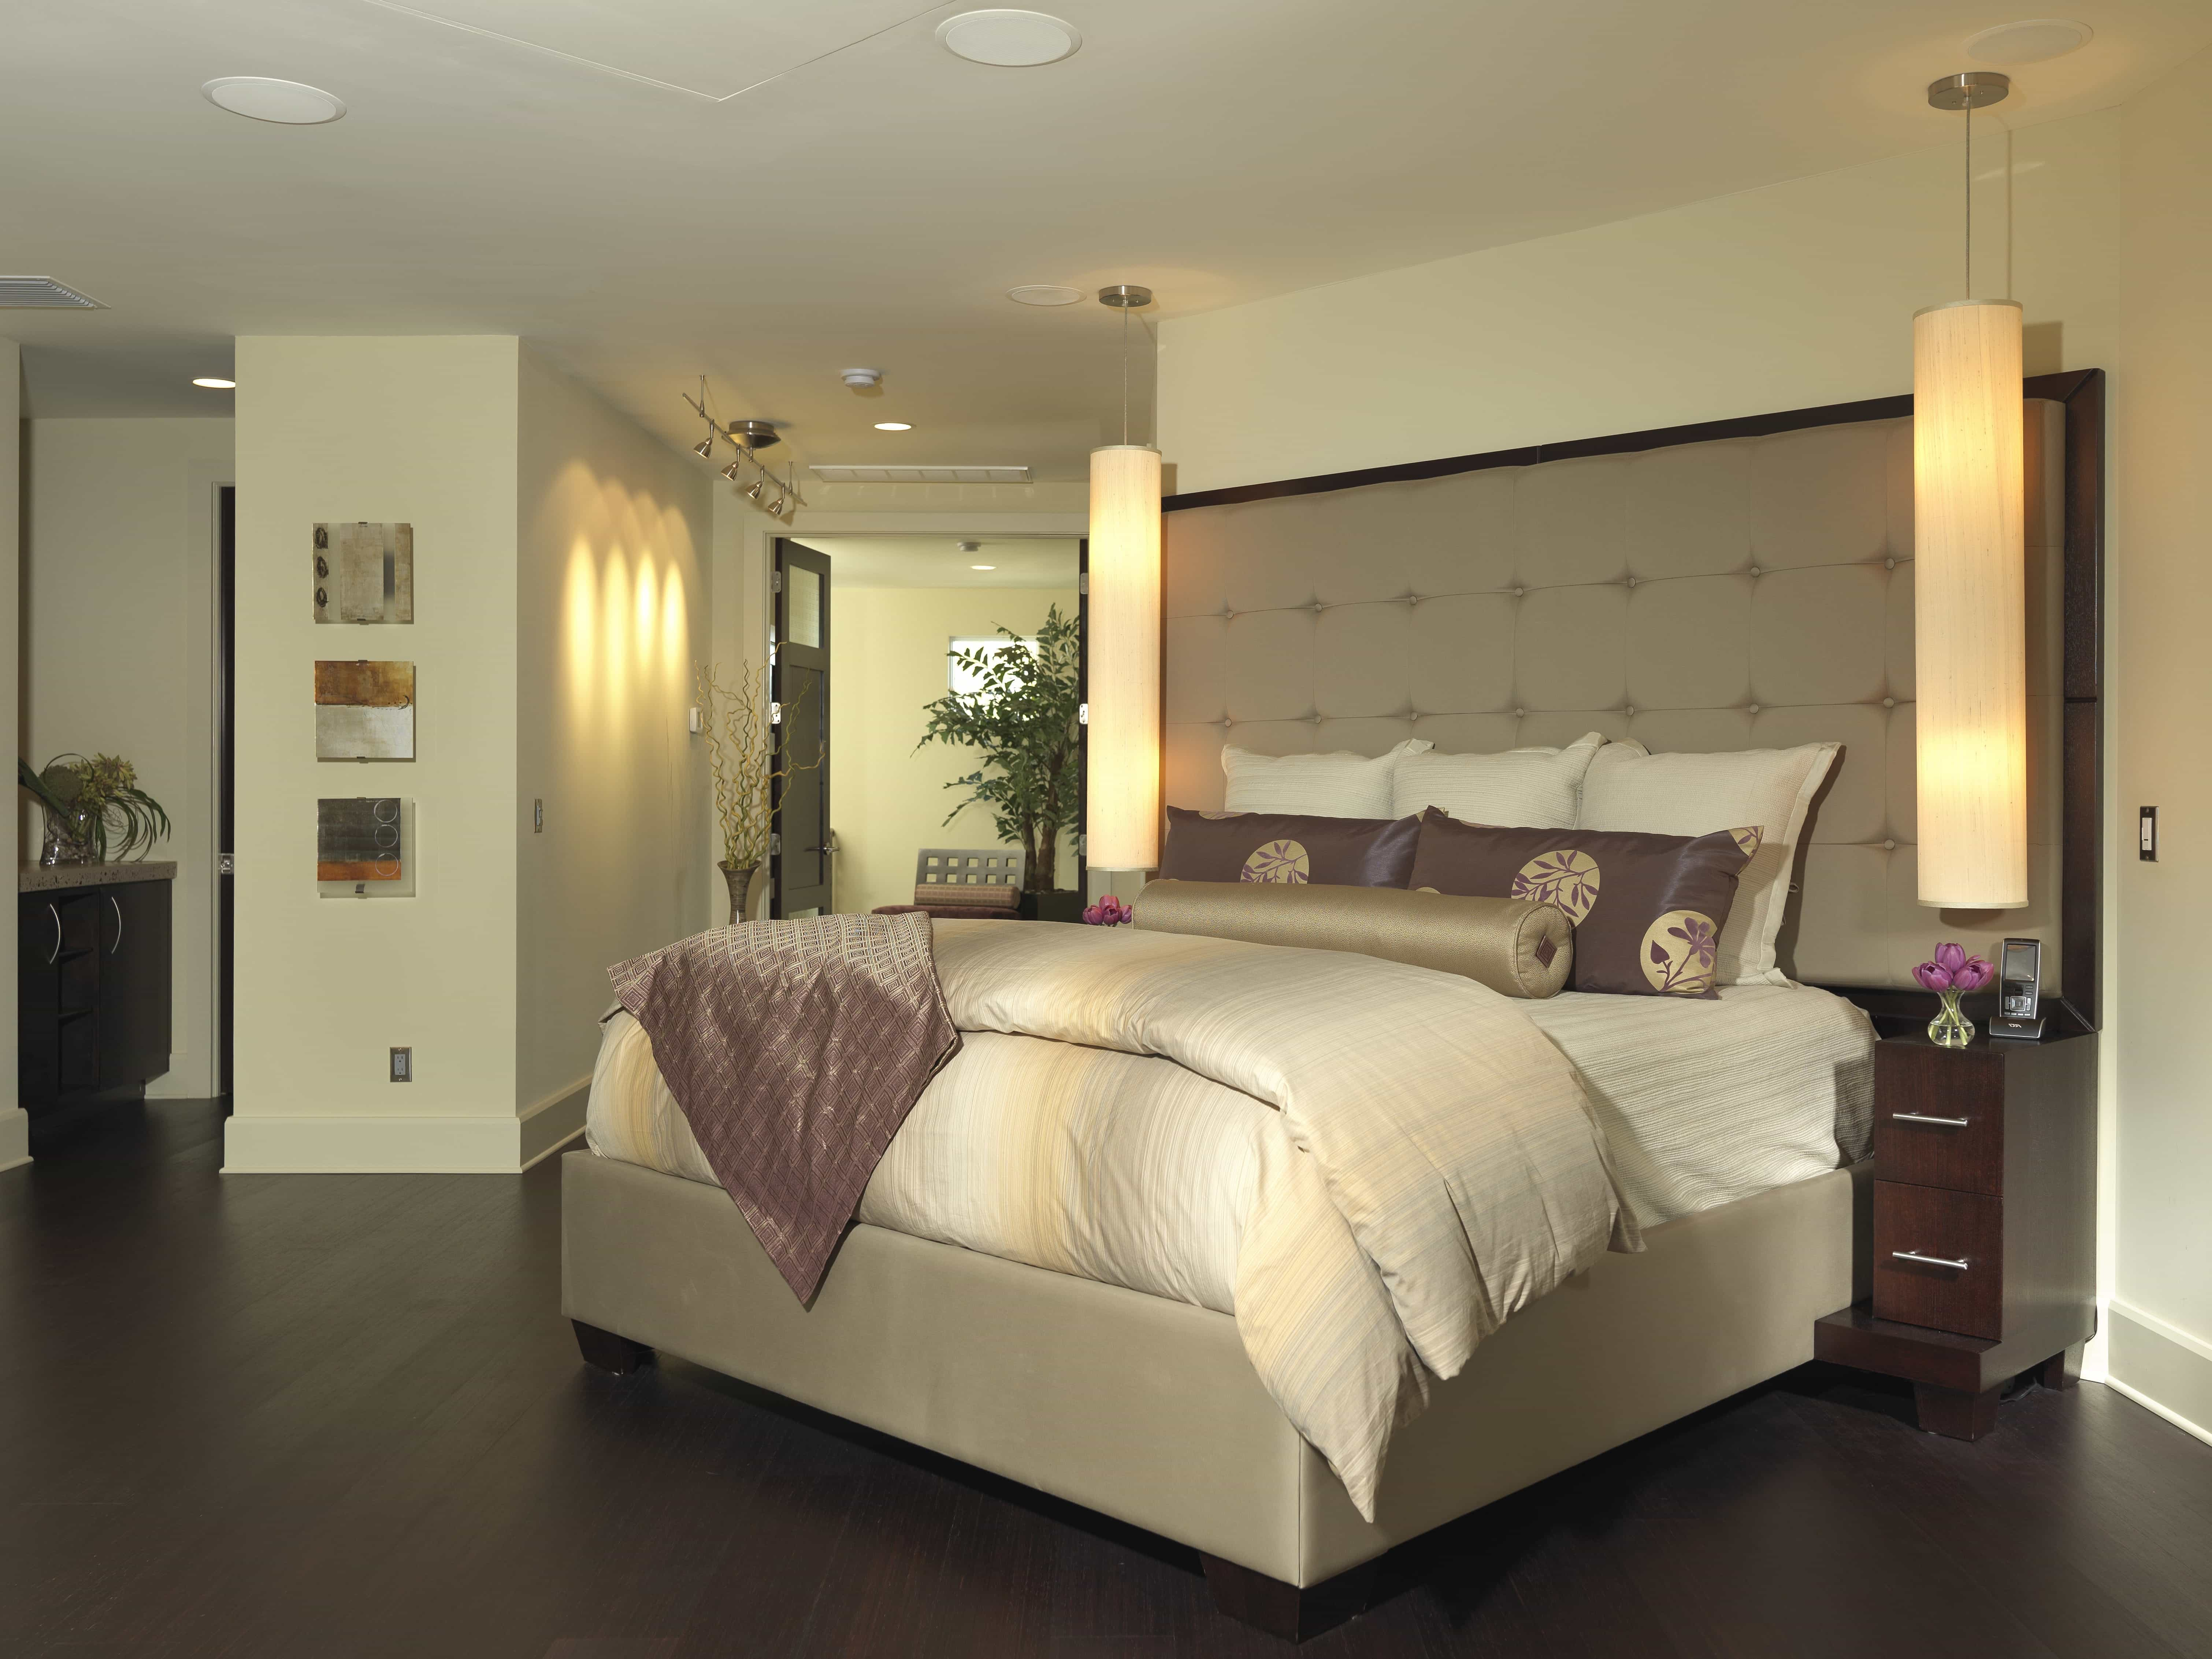 Neutral Contemporary Bedroom With Purple Asian Inspired Accents (Image 26 of 32)